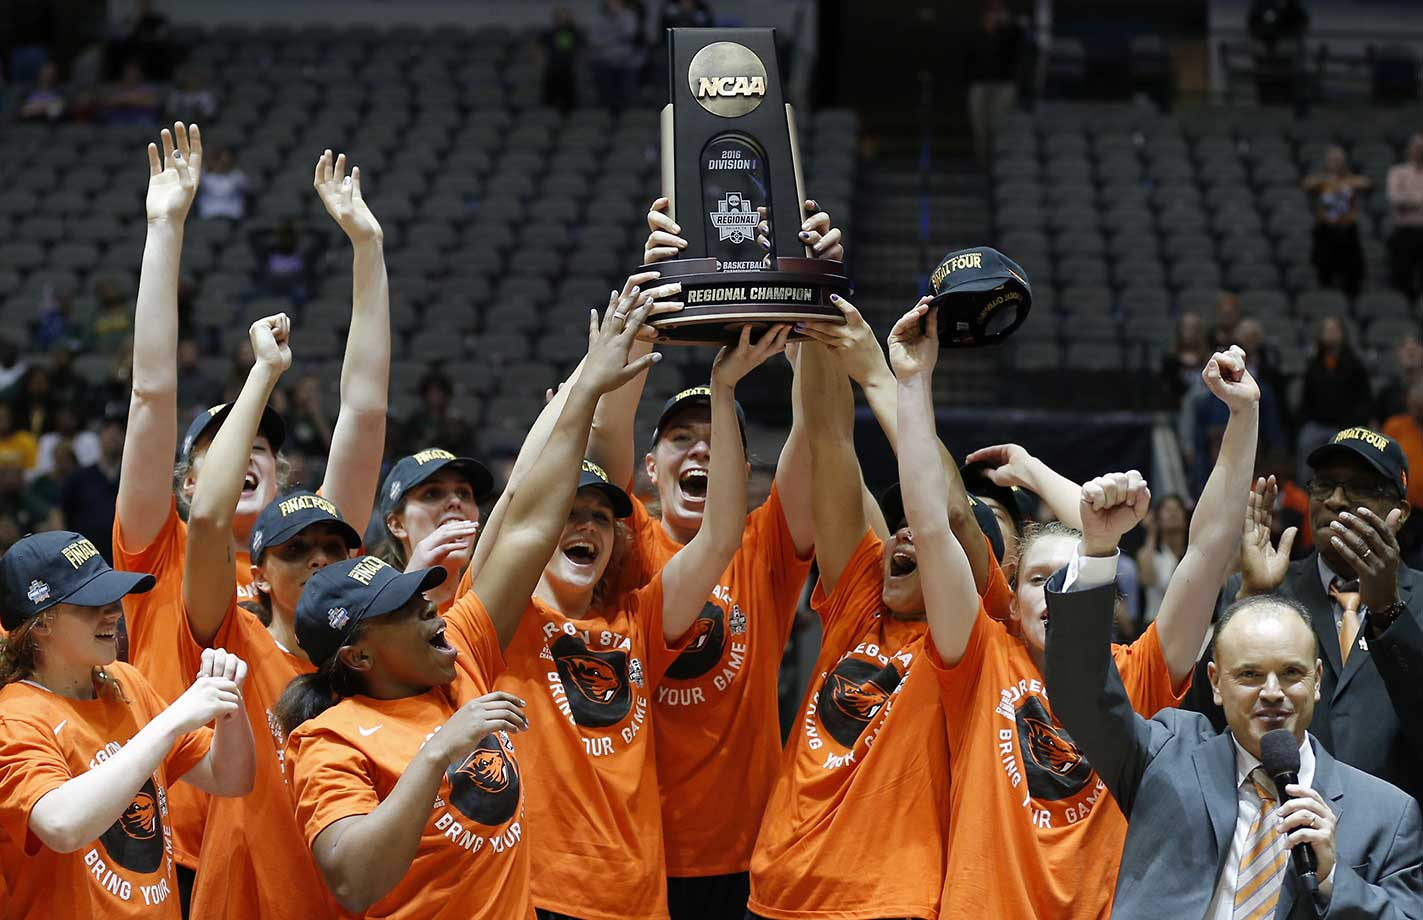 Oregon State celebrates winning 60-57 over Baylor in a regional final of the women's NCAA tournament.